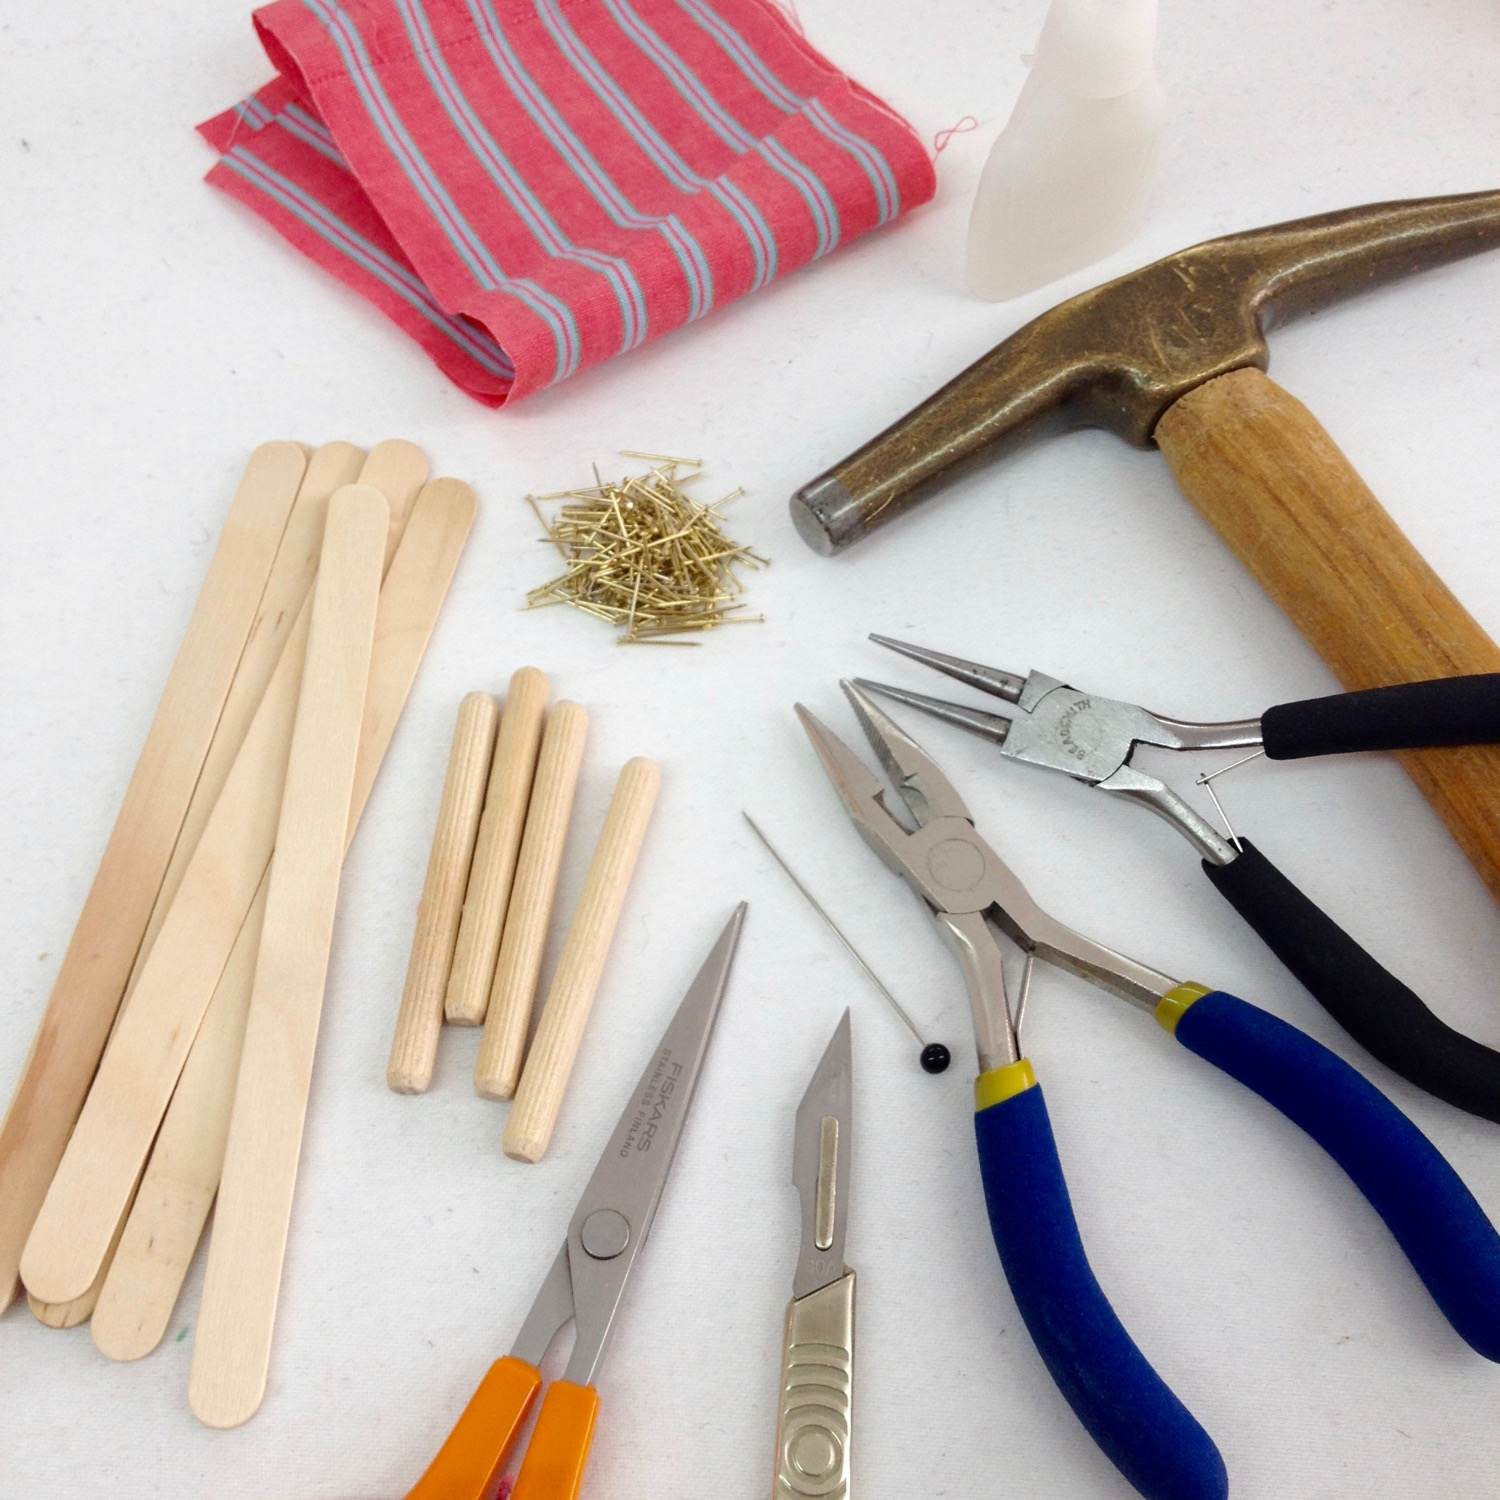 Materials: ice cream sticks (I think I used longer versions from a craft supply), a needle and thread (or a sewing machine), scissors, small nails (used in miniature making), hammer, pliers, wooden dowels (I think I used leftover long IKEA dowels!), some fabric, pencil, sharp blade and a pin (or needle would do too).